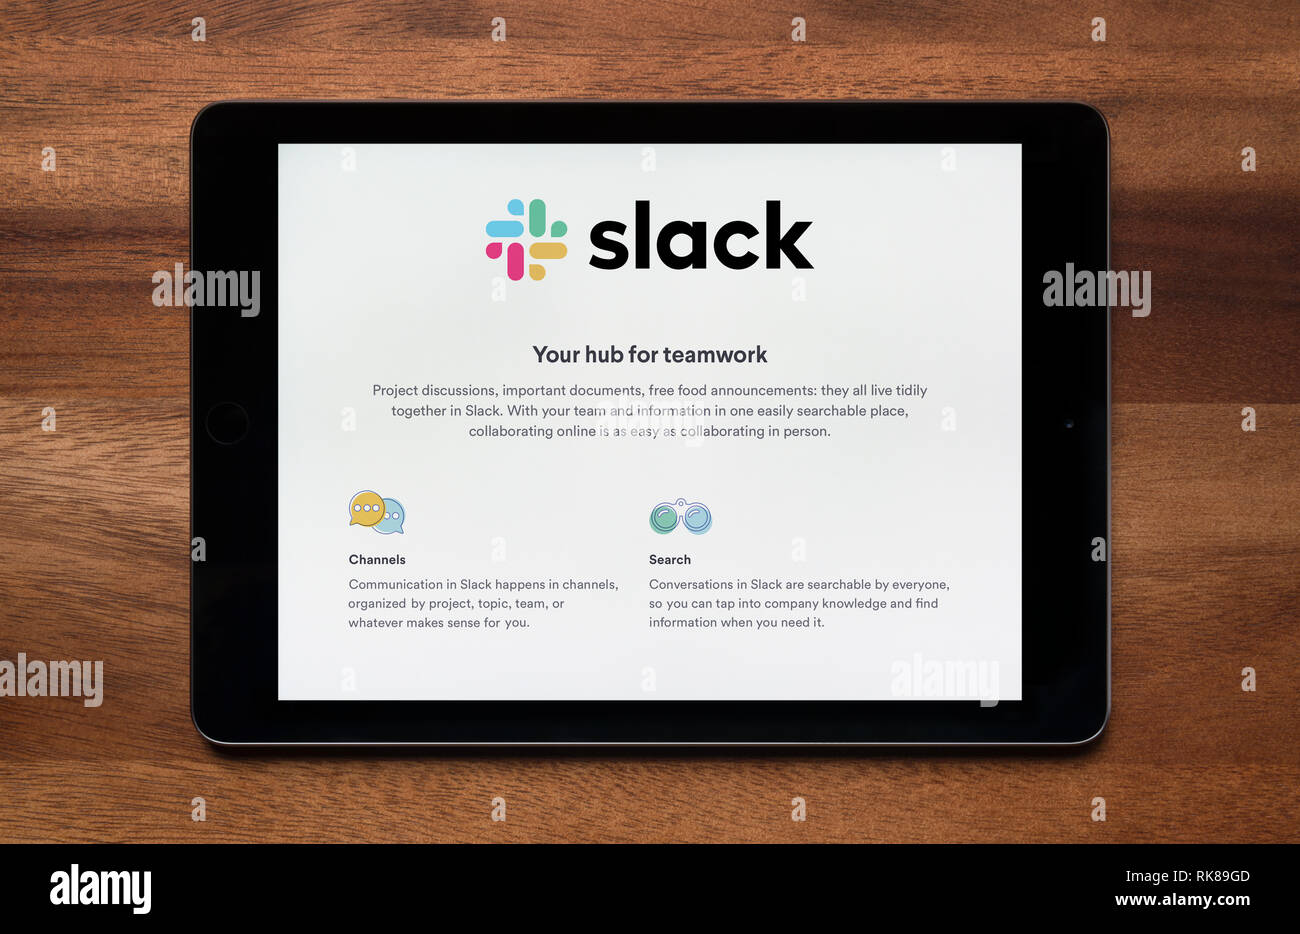 The website of Slack is seen on an iPad tablet, which is resting on a wooden table (Editorial use only). - Stock Image